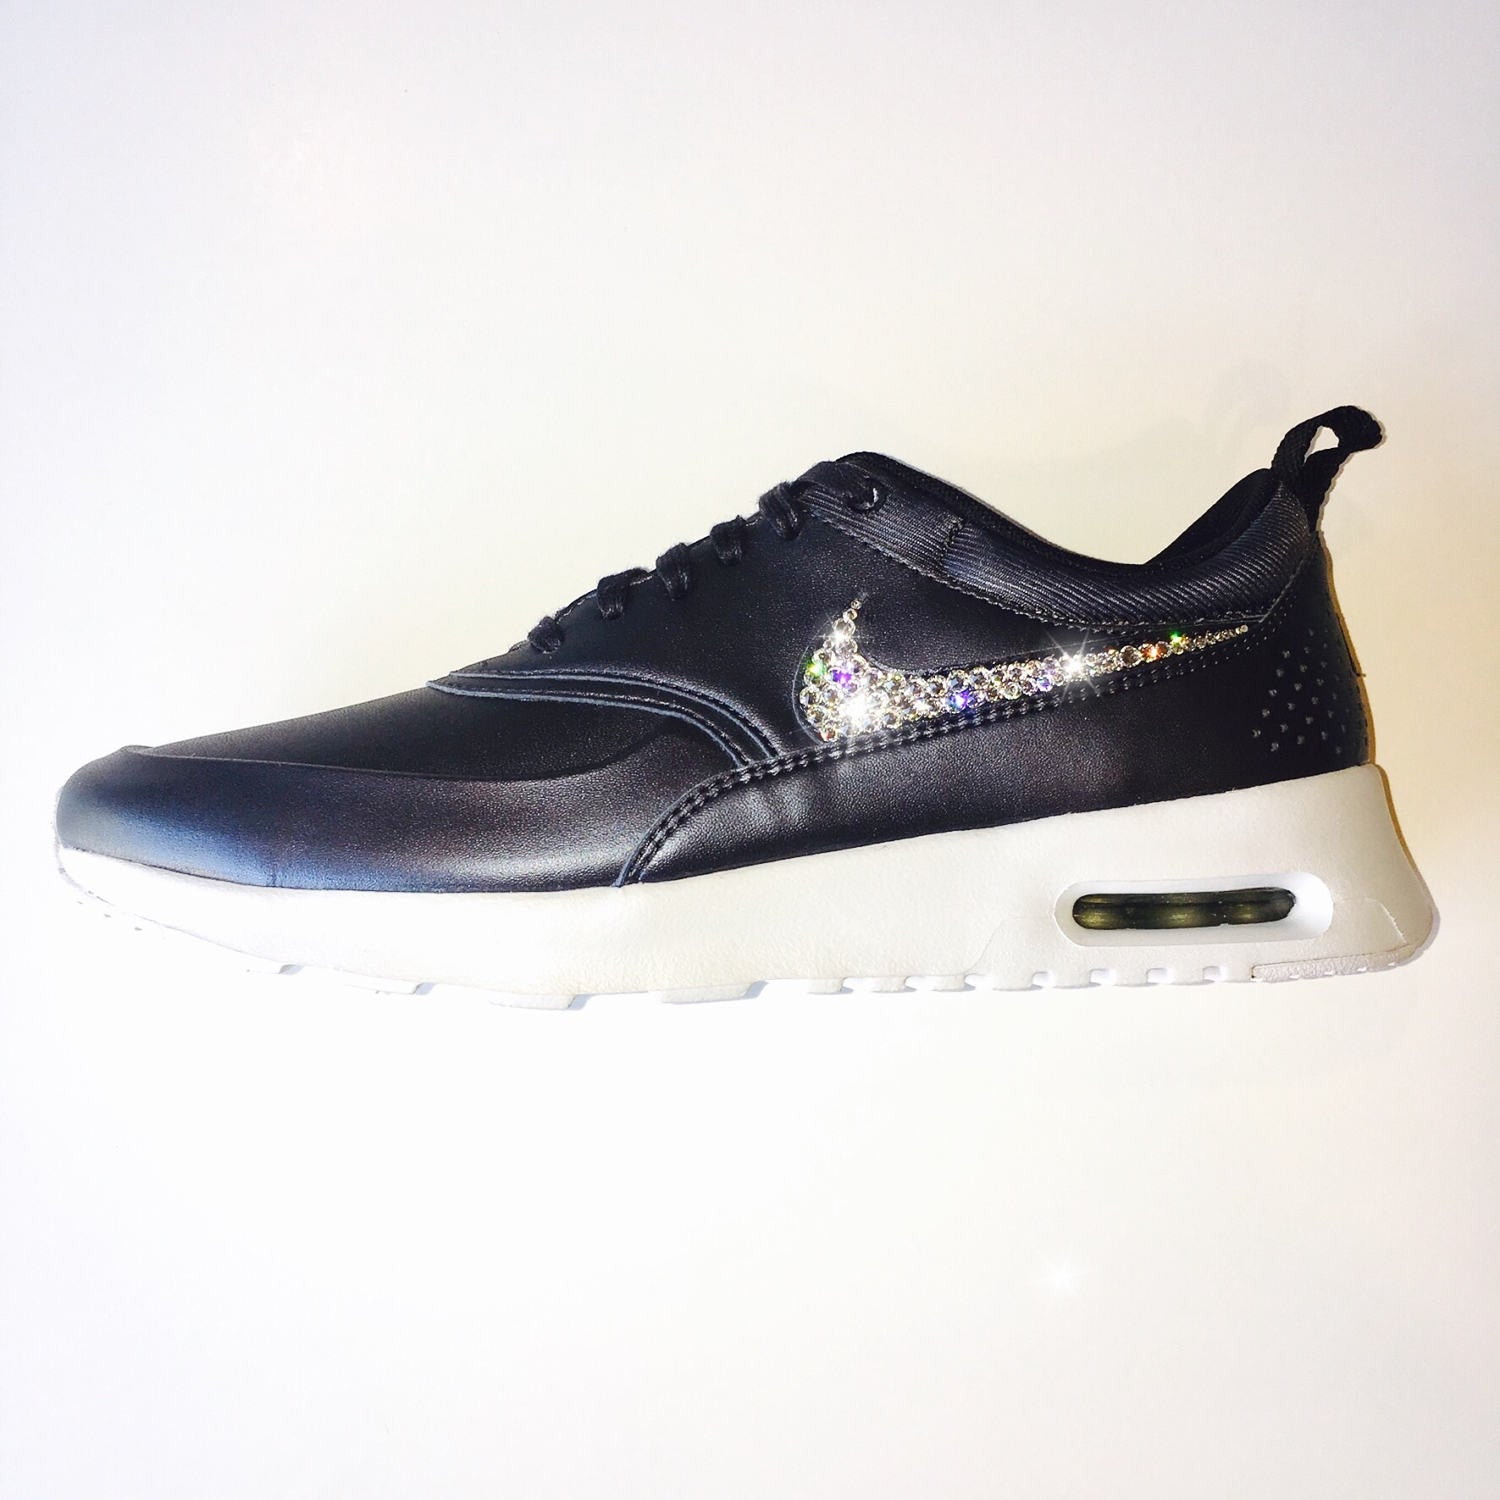 Jet Hematite Bling Nike Air Max Thea Metallic SE Shoes with